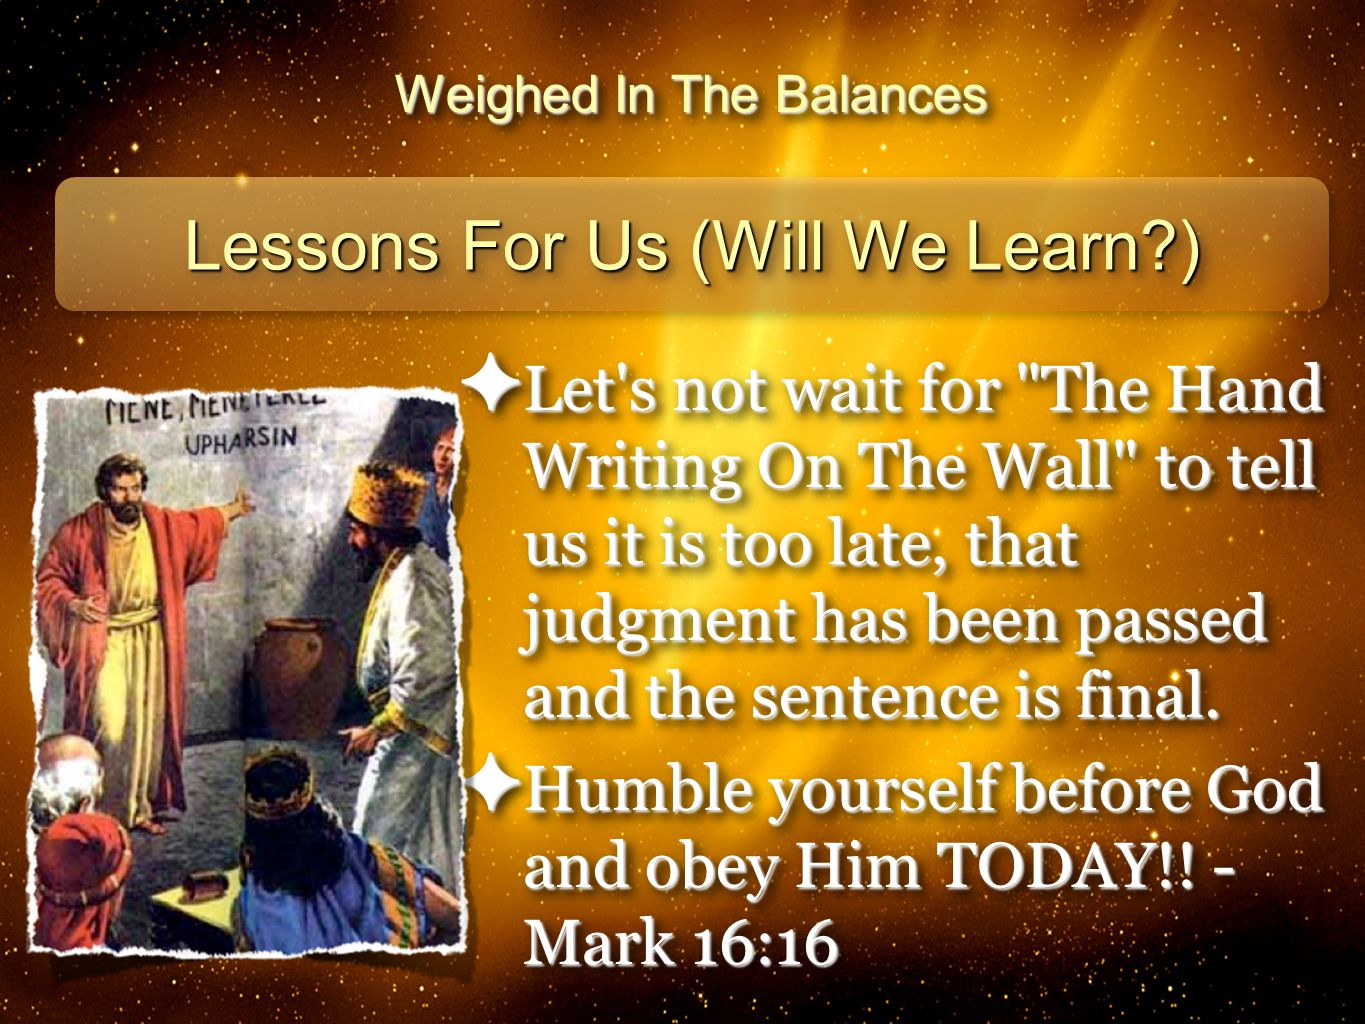 28 Weighed In The Balances Lessons For Us (Will We Learn ) ✦ Let s not wait for The Hand Writing On The Wall to tell us it is too late, that judgment has been passed and the sentence is final.